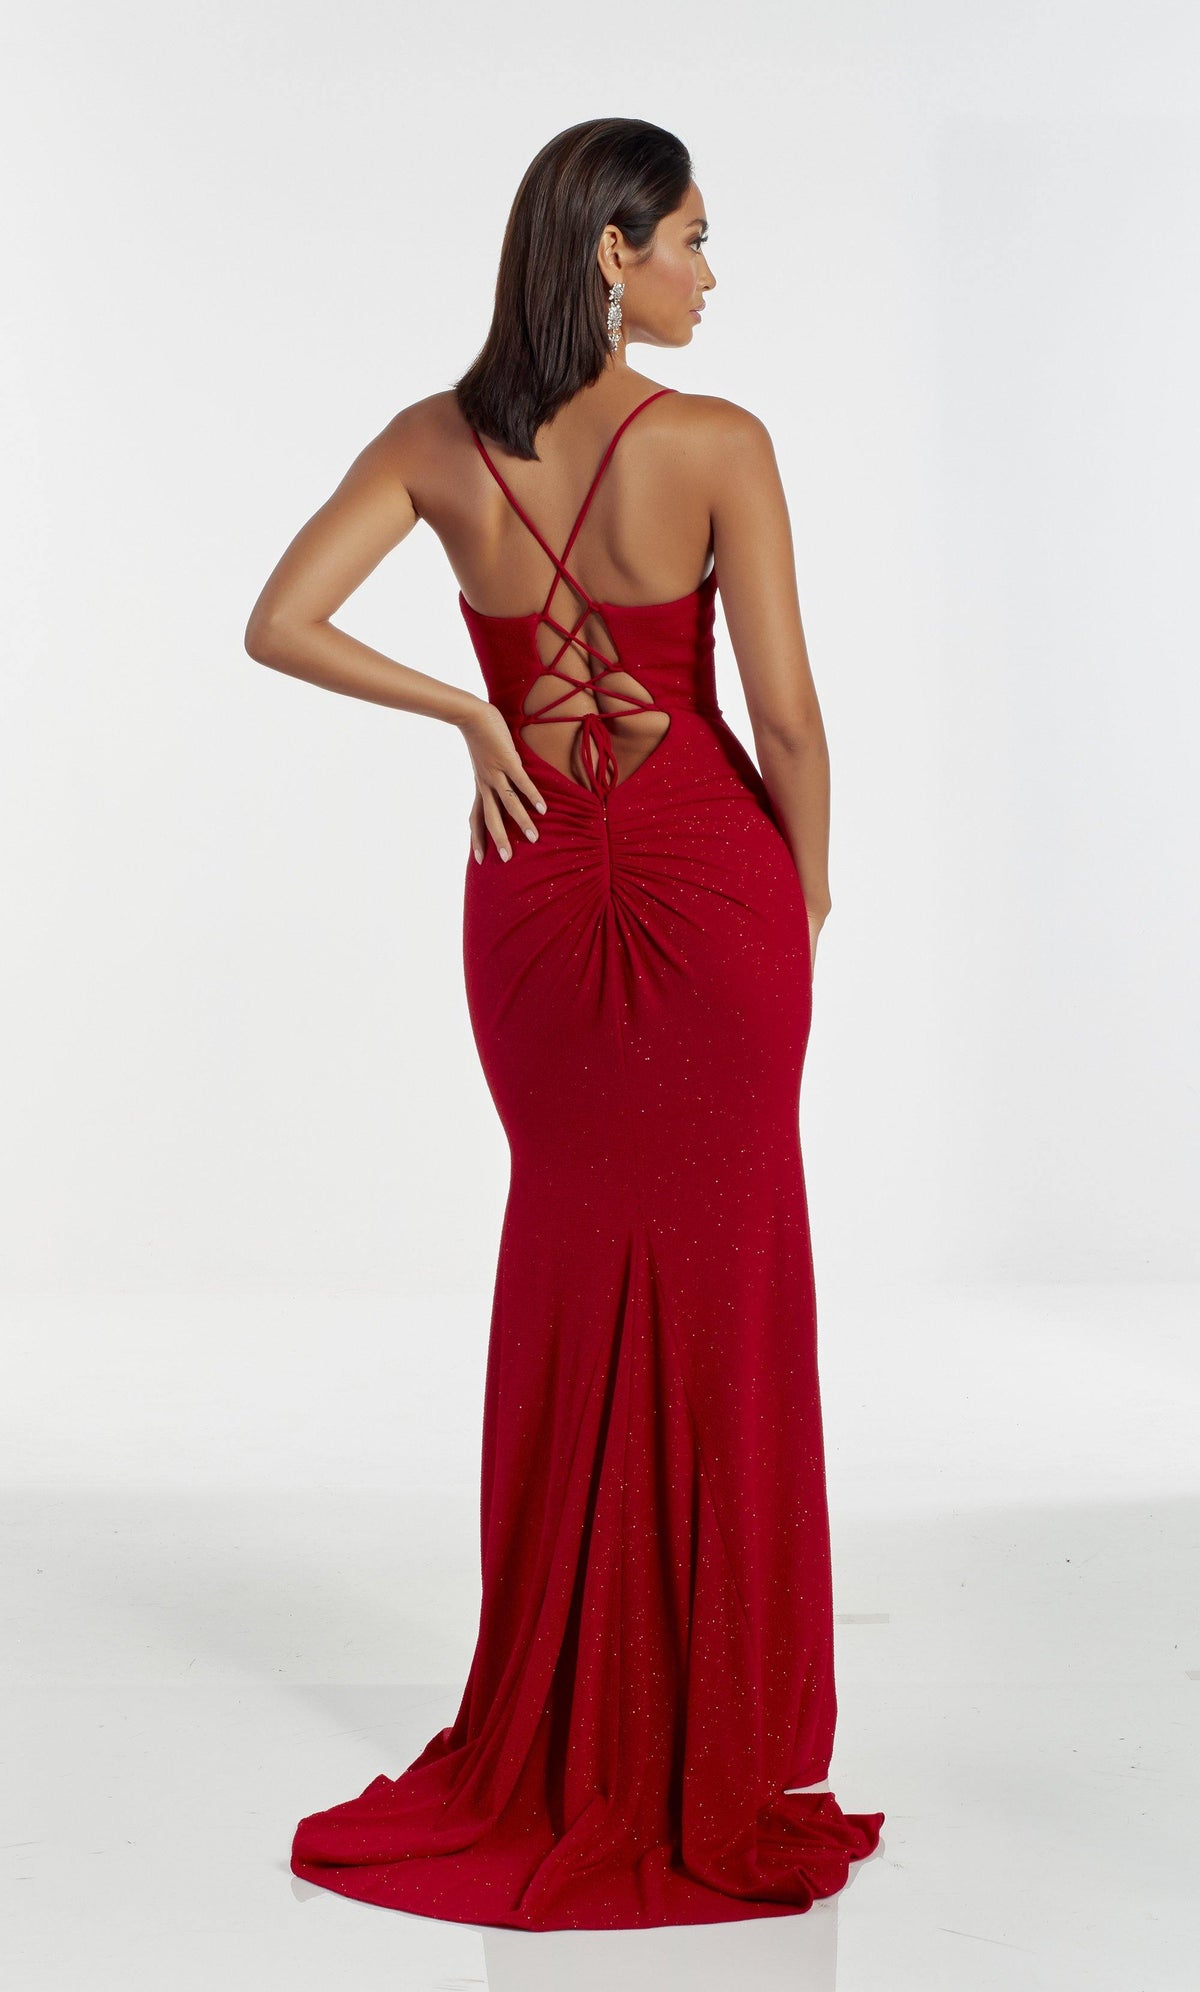 Sexy Red glitter jersey guest of wedding dress with a lace up back, gathered fabric detail, and train